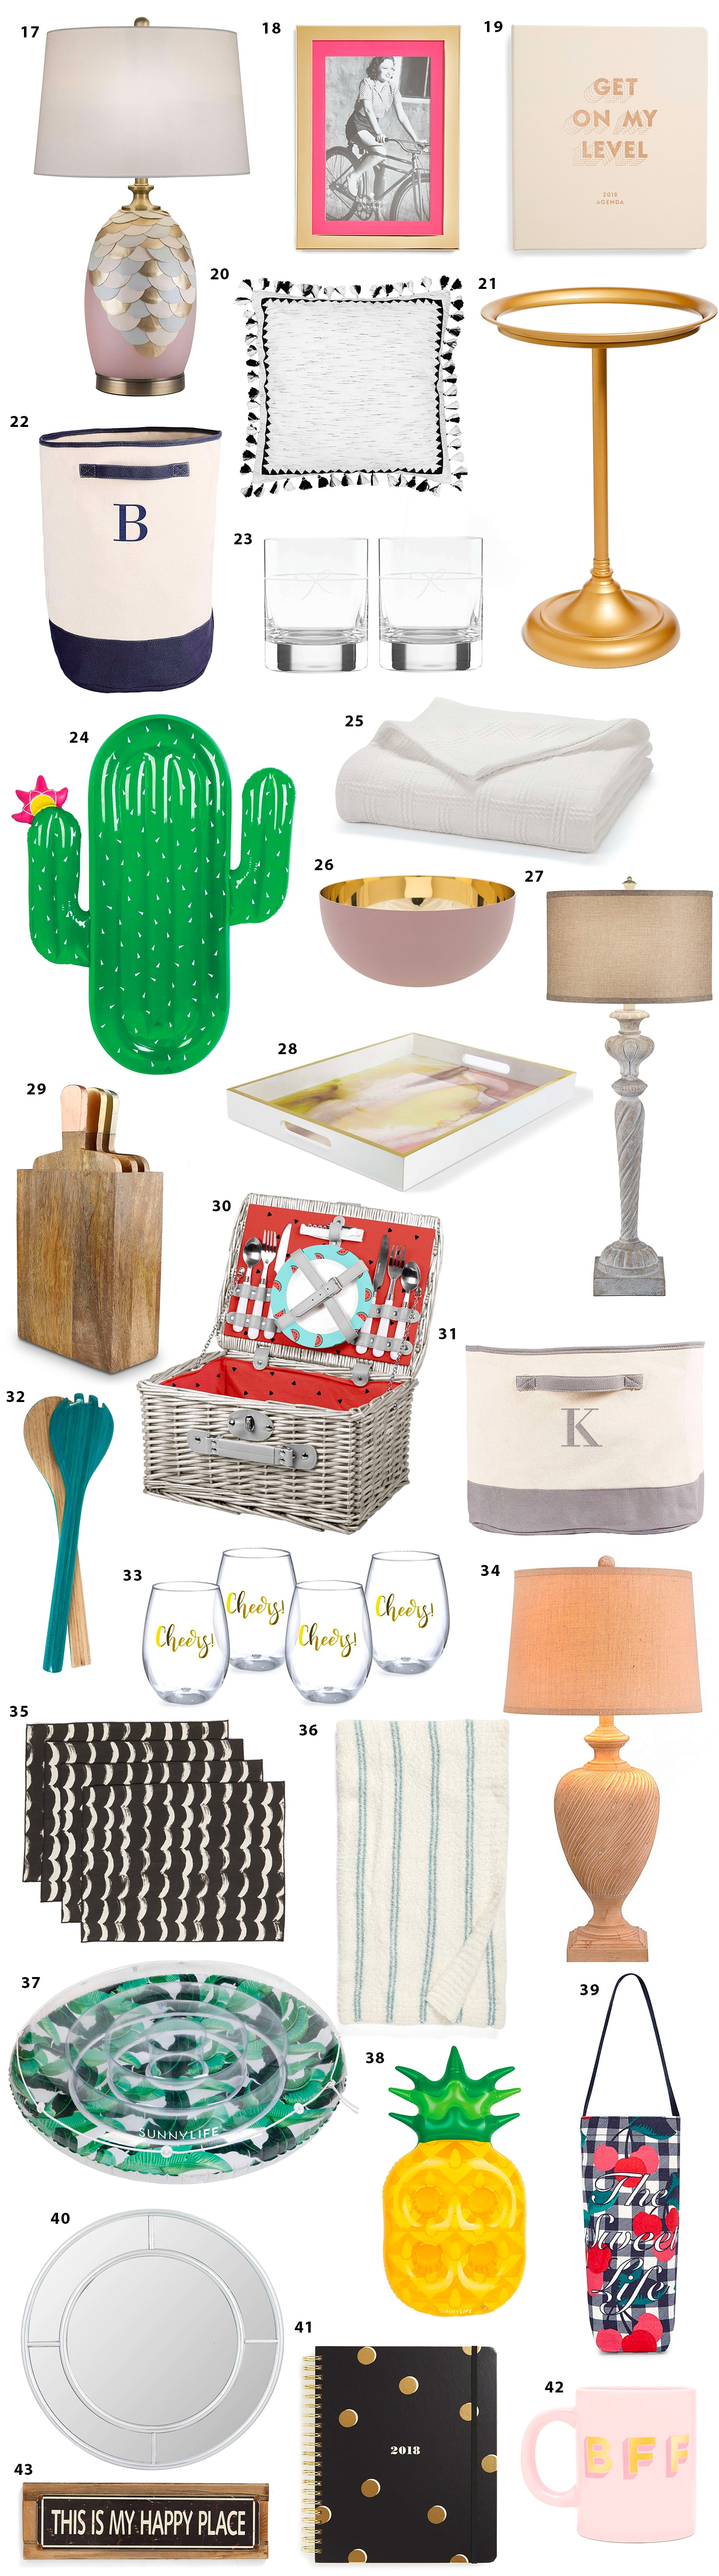 Best home decor finds from the nordstrom summer sale Nordstrom home decor sale